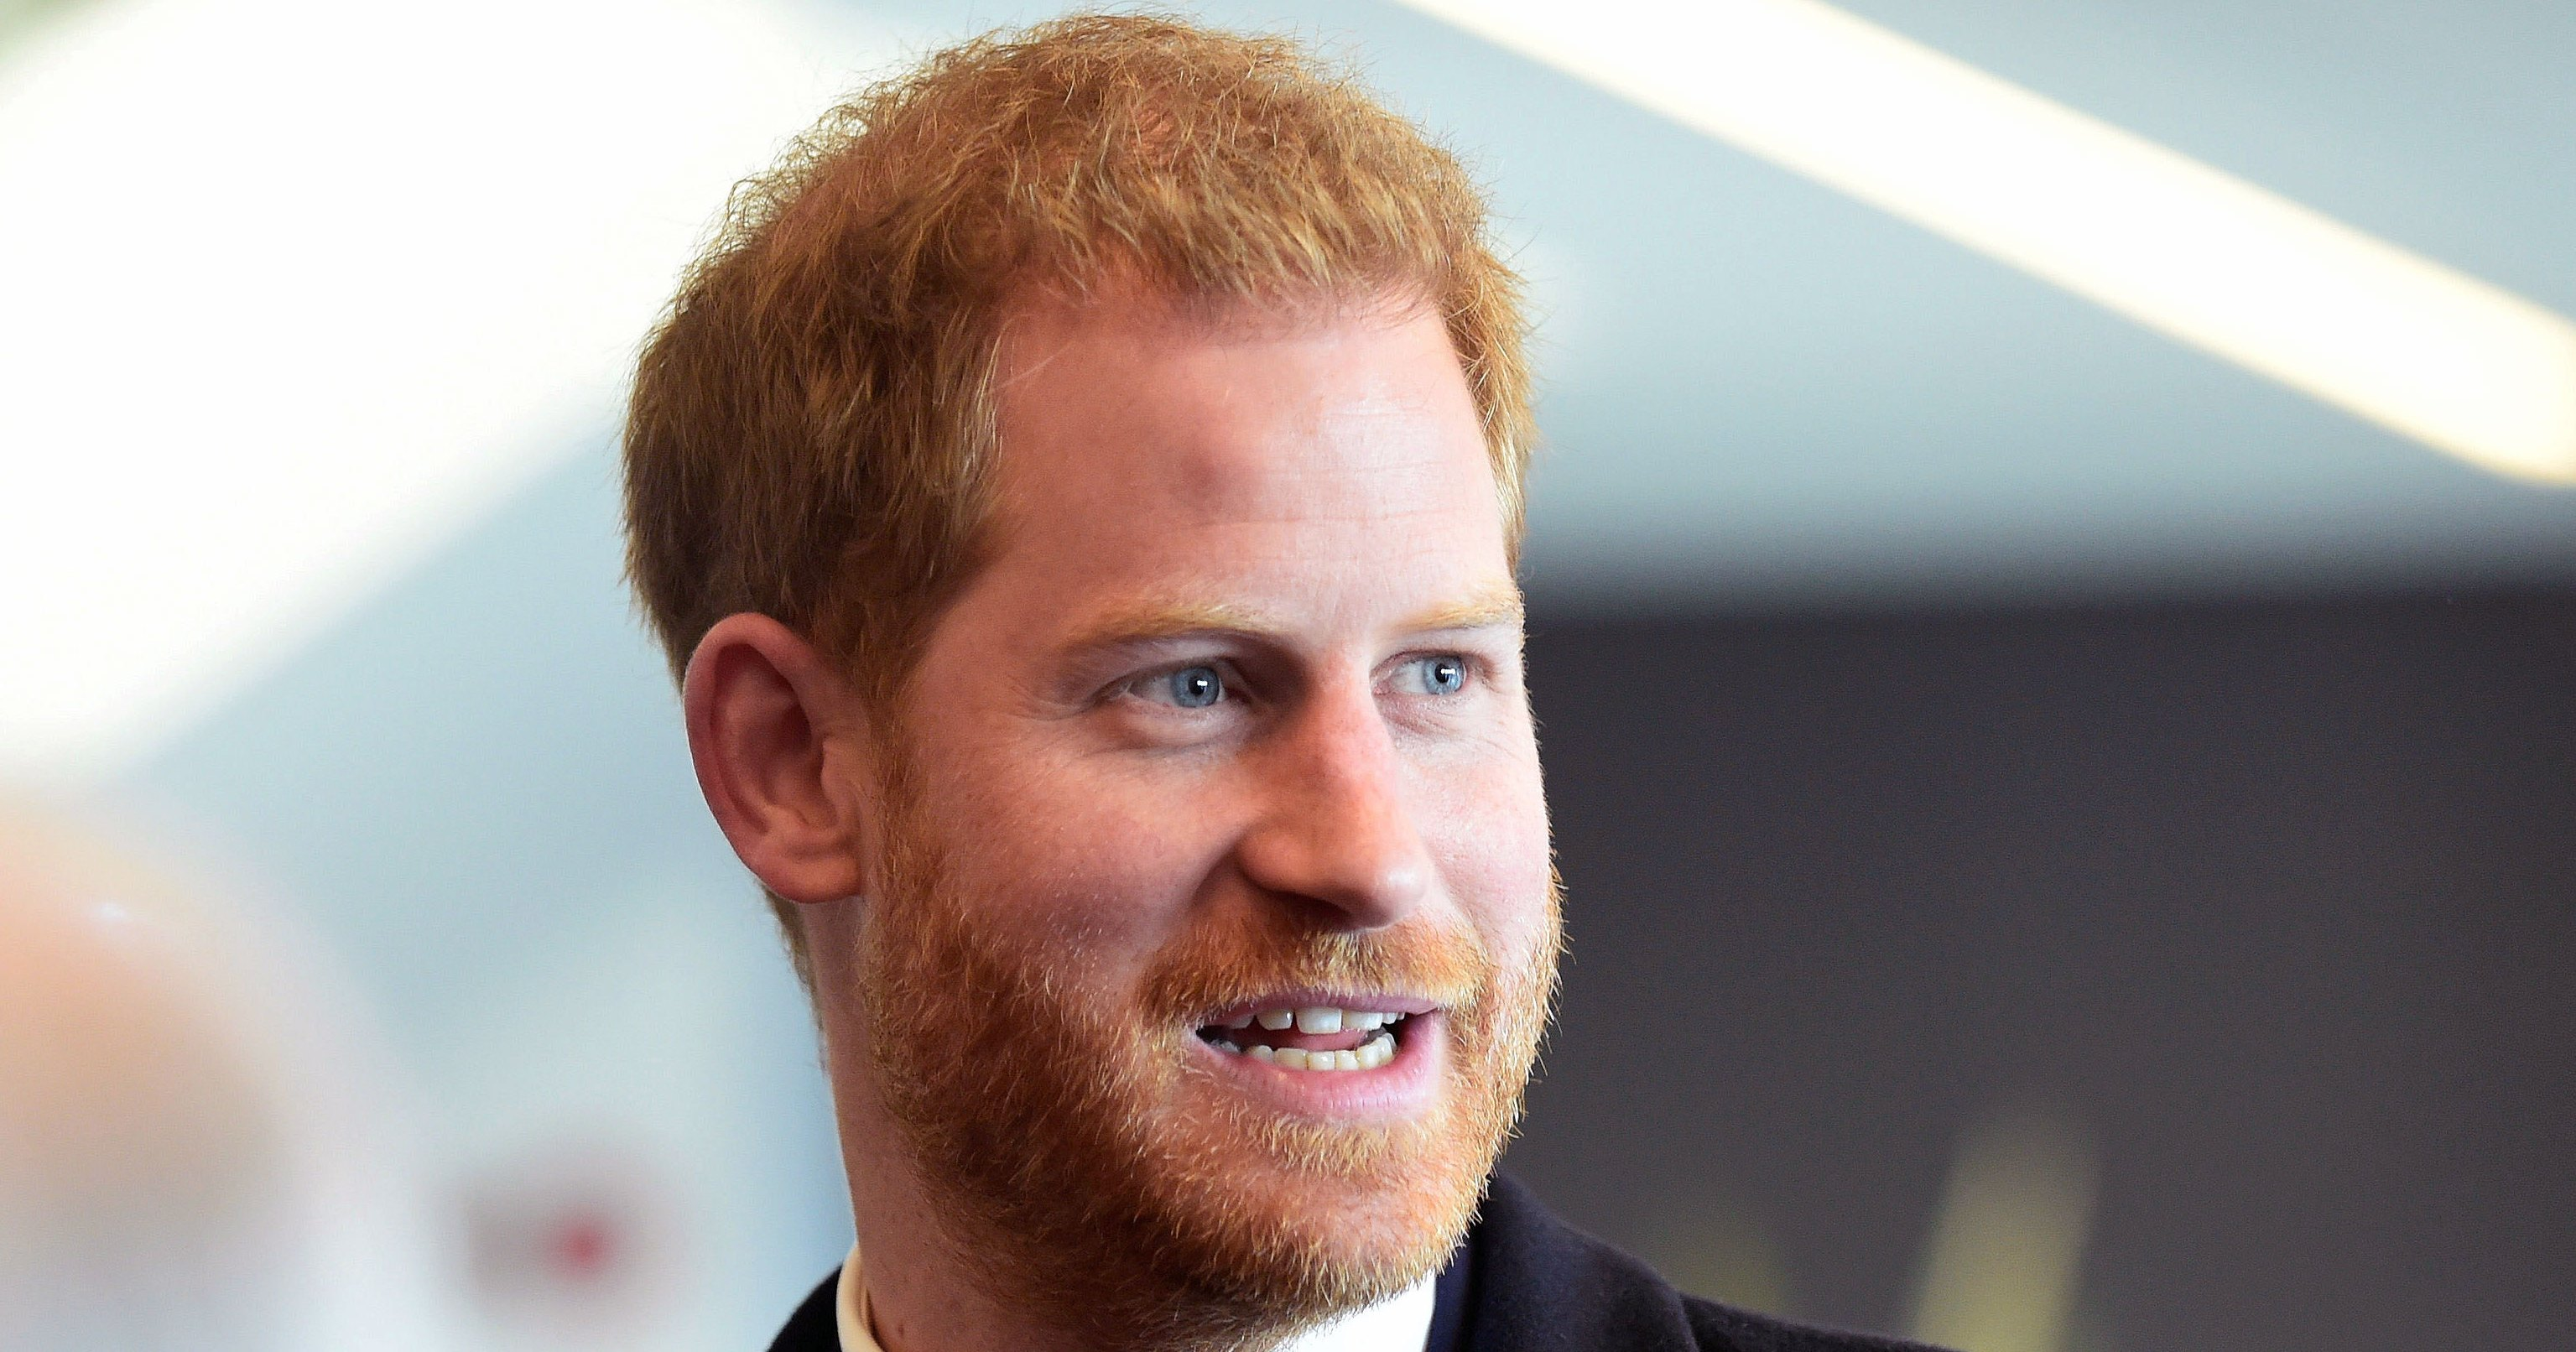 Prince Harry Racked Up a $38,000 Bill on Infamous Naked Las Vegas Trip — But Never Had to Pay It!